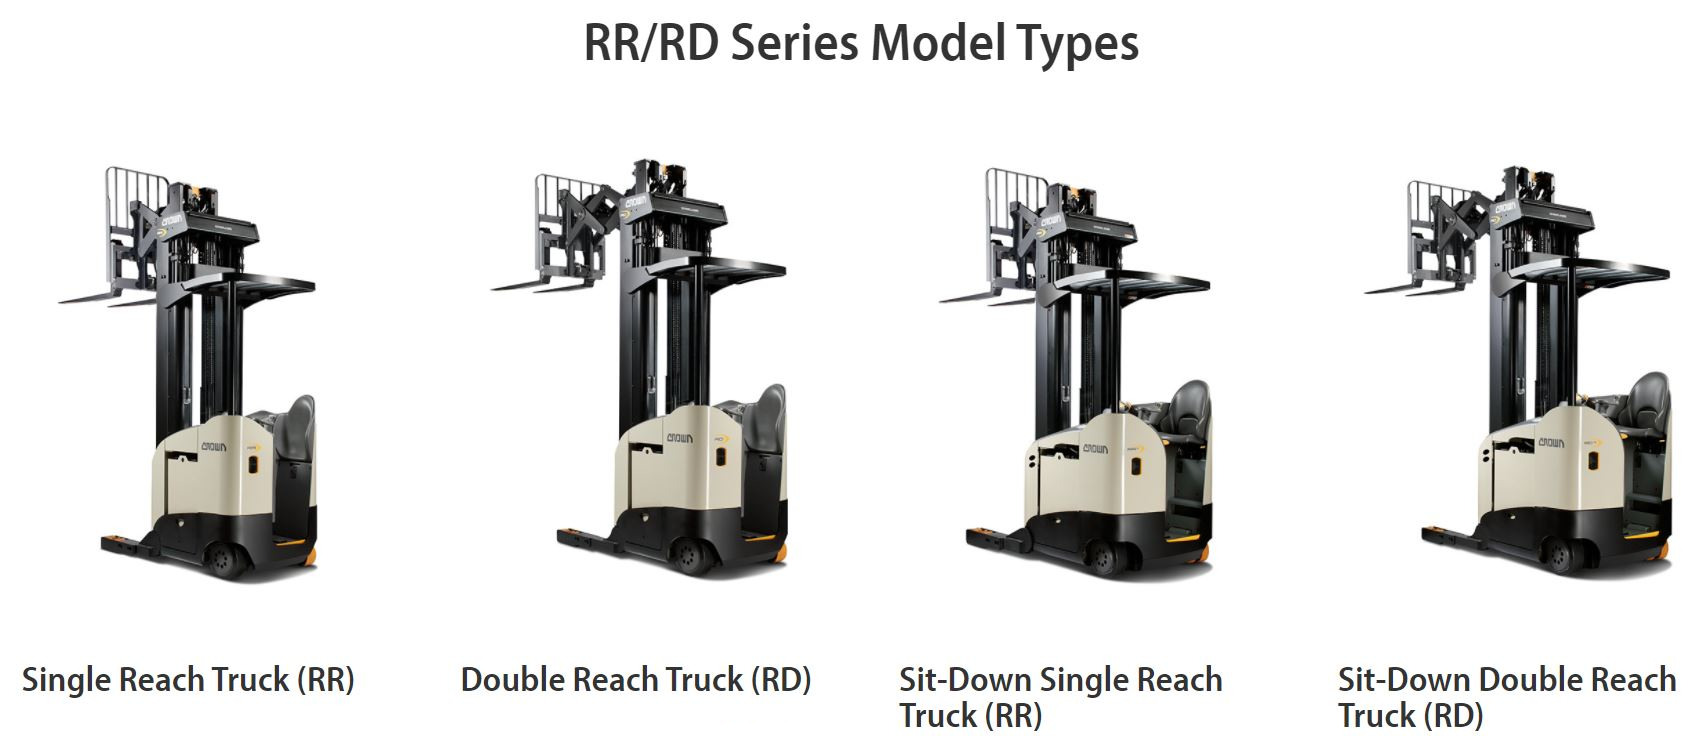 The RR 5700 series